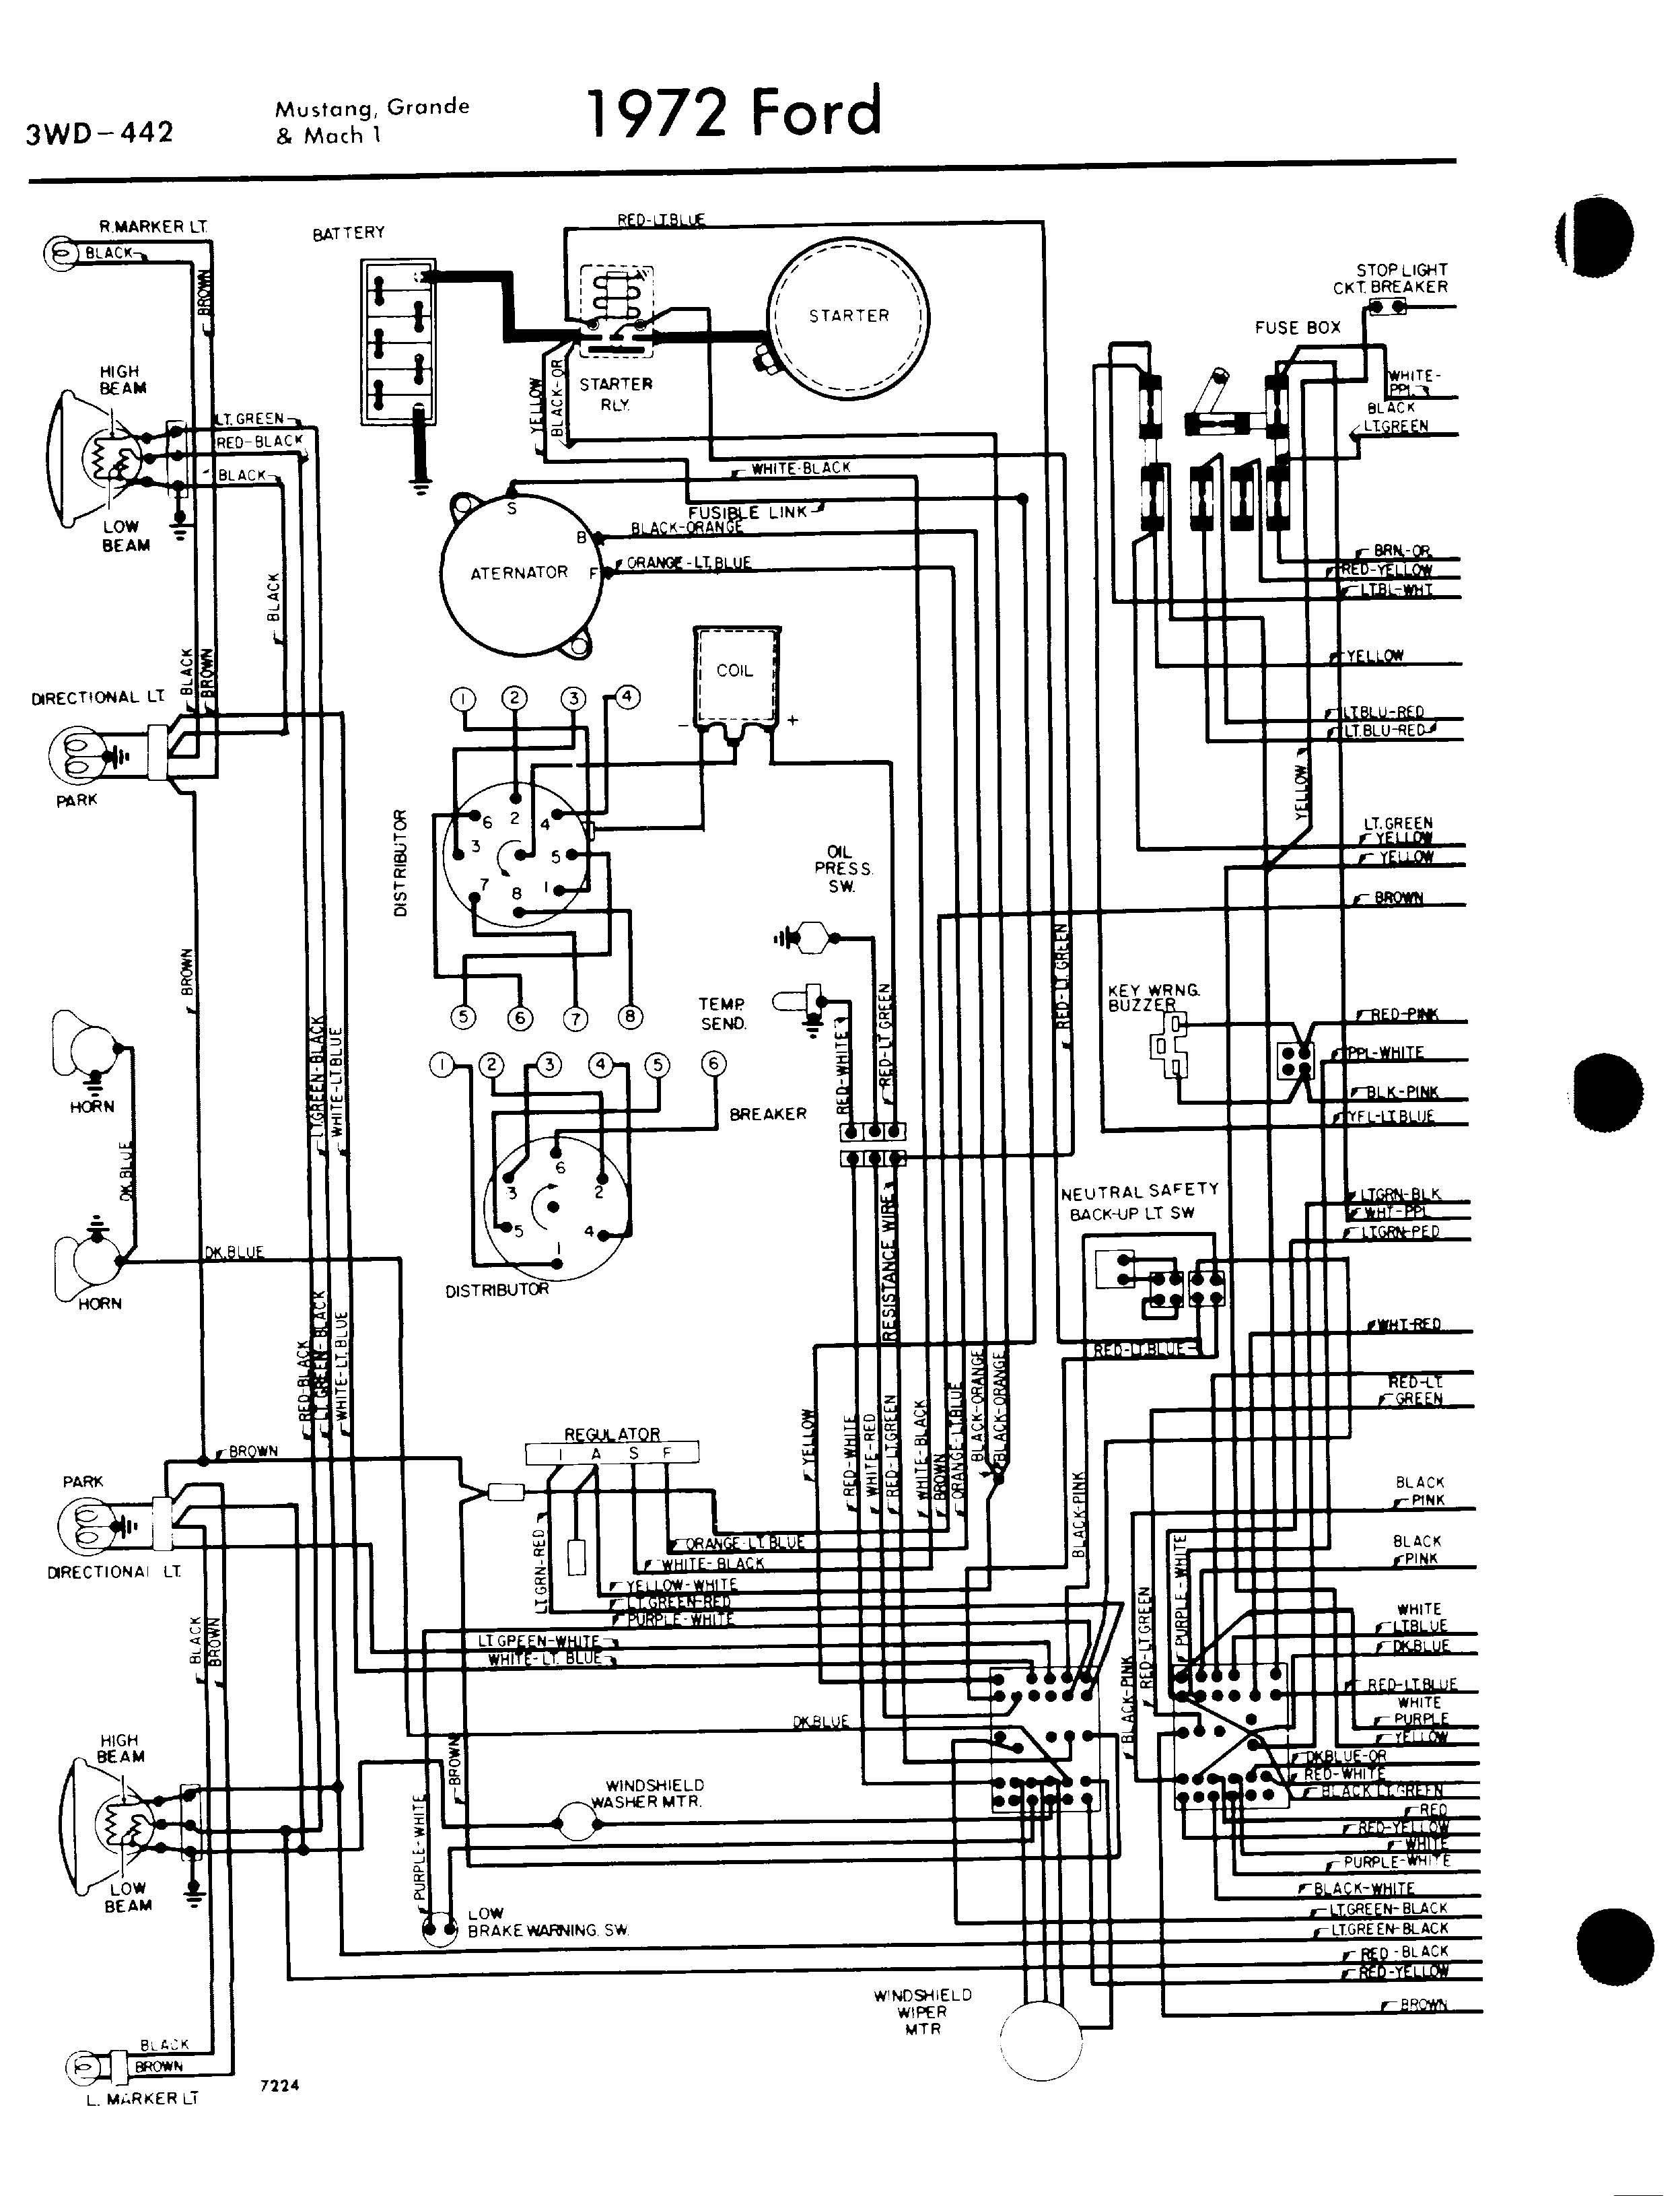 1996 Mustang Wiring Diagrams